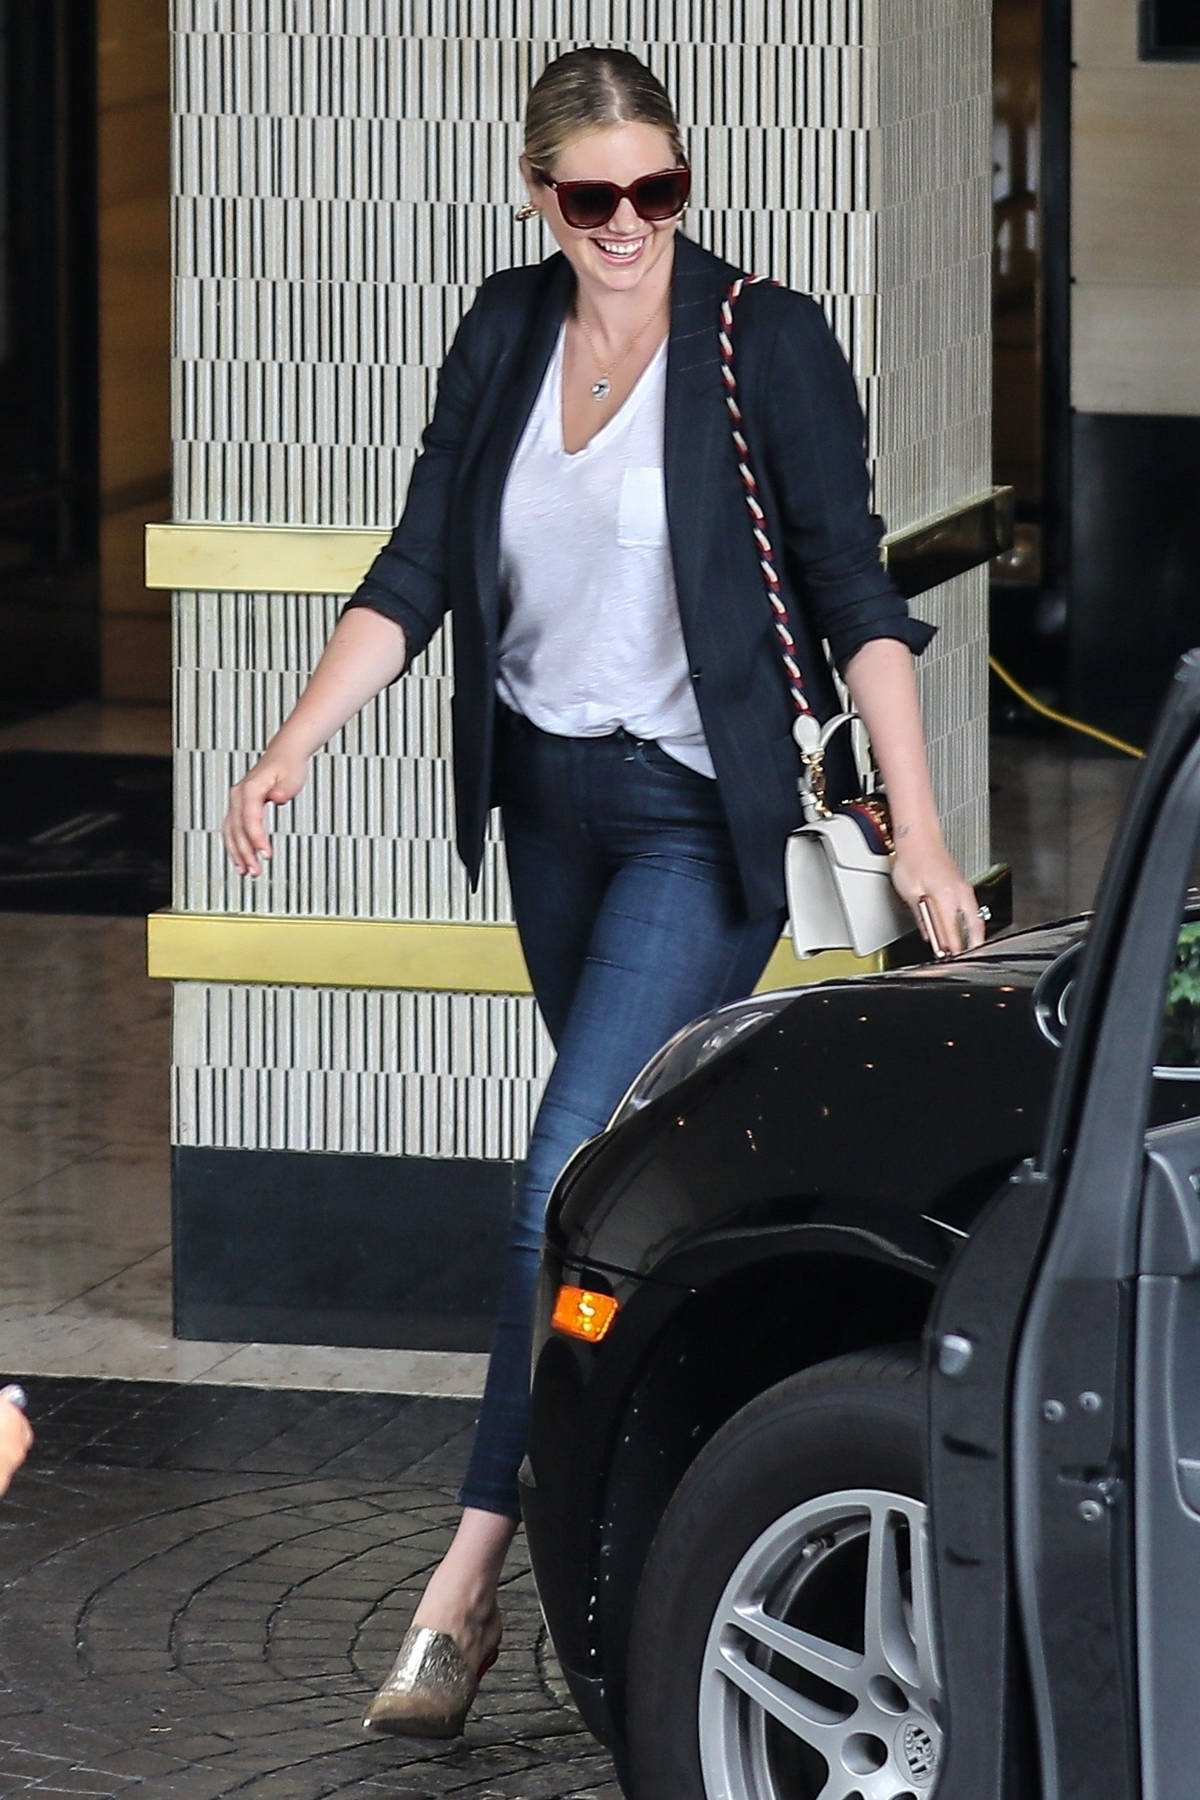 Kate Upton Looks Slick In A Blazer And Skin Tight Jeans As She